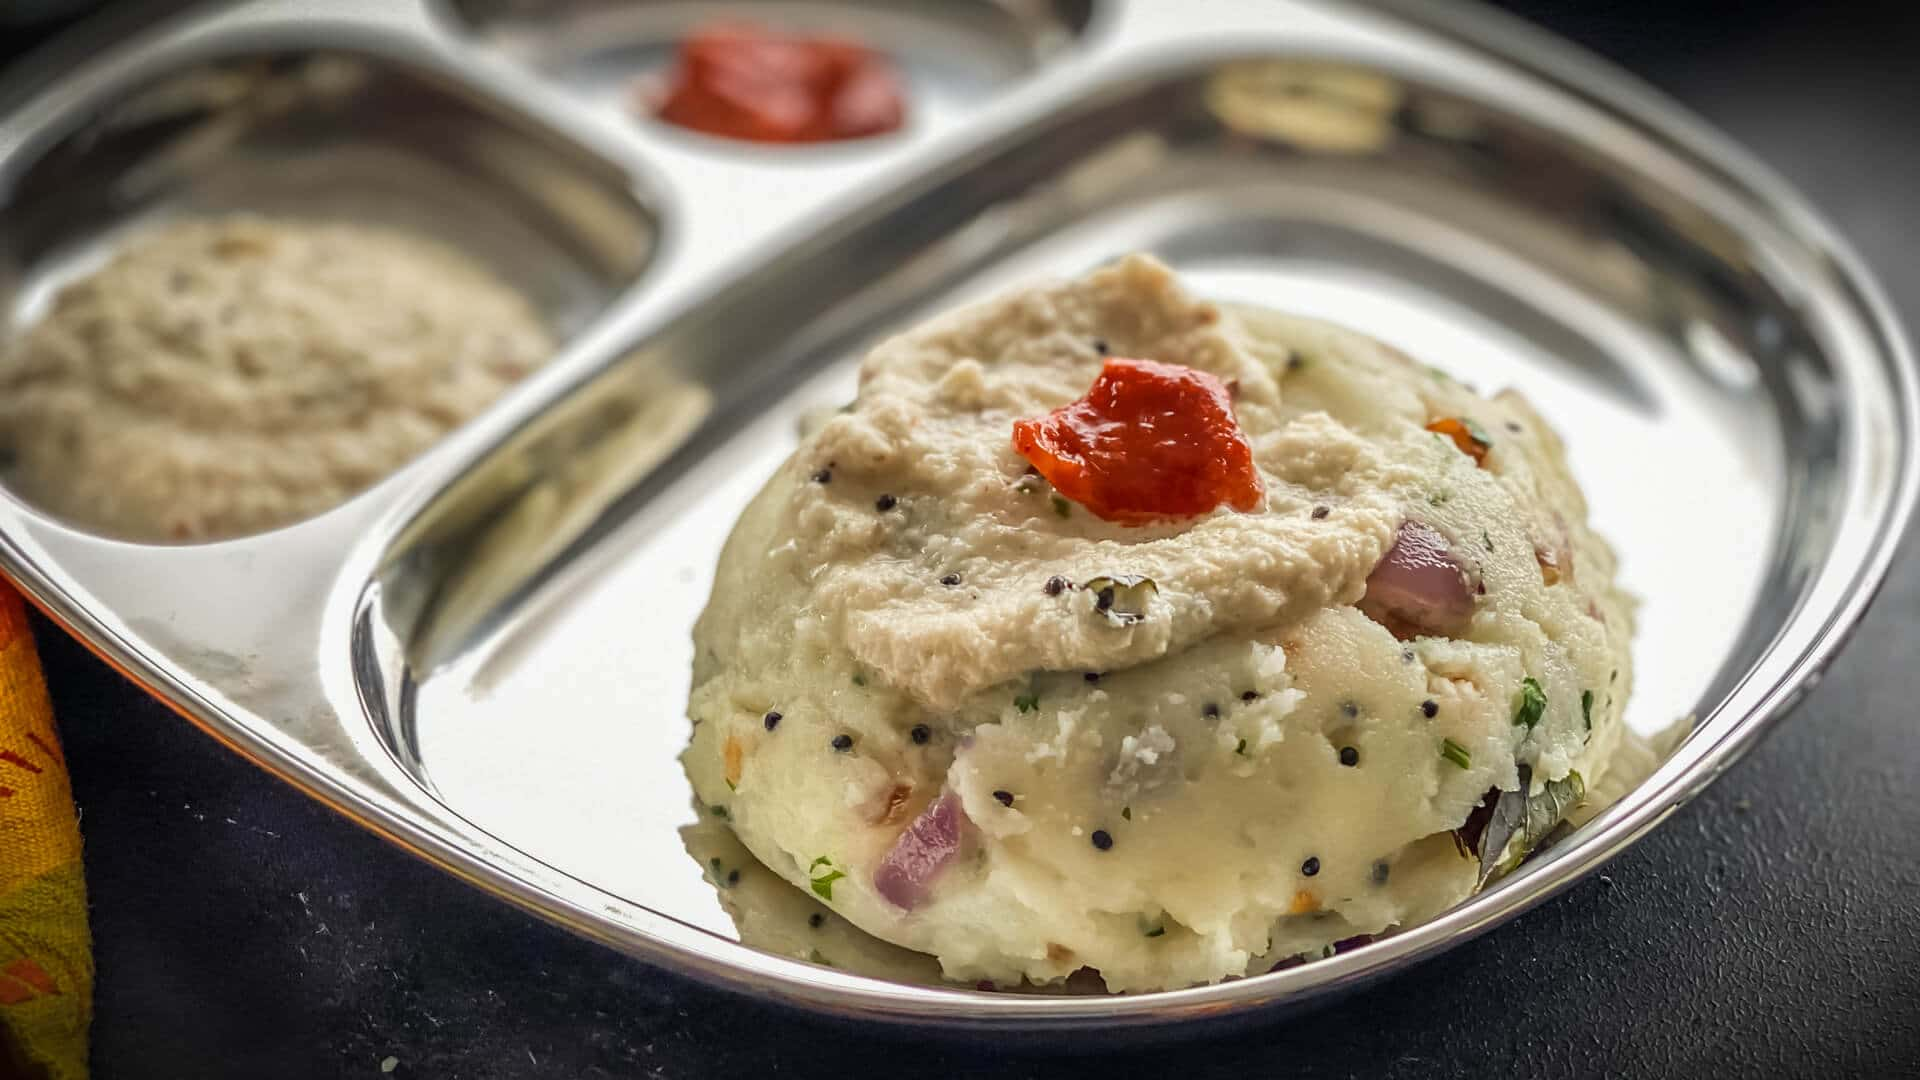 Rava upma served in a steel plate along with cooconut chutney and pickle